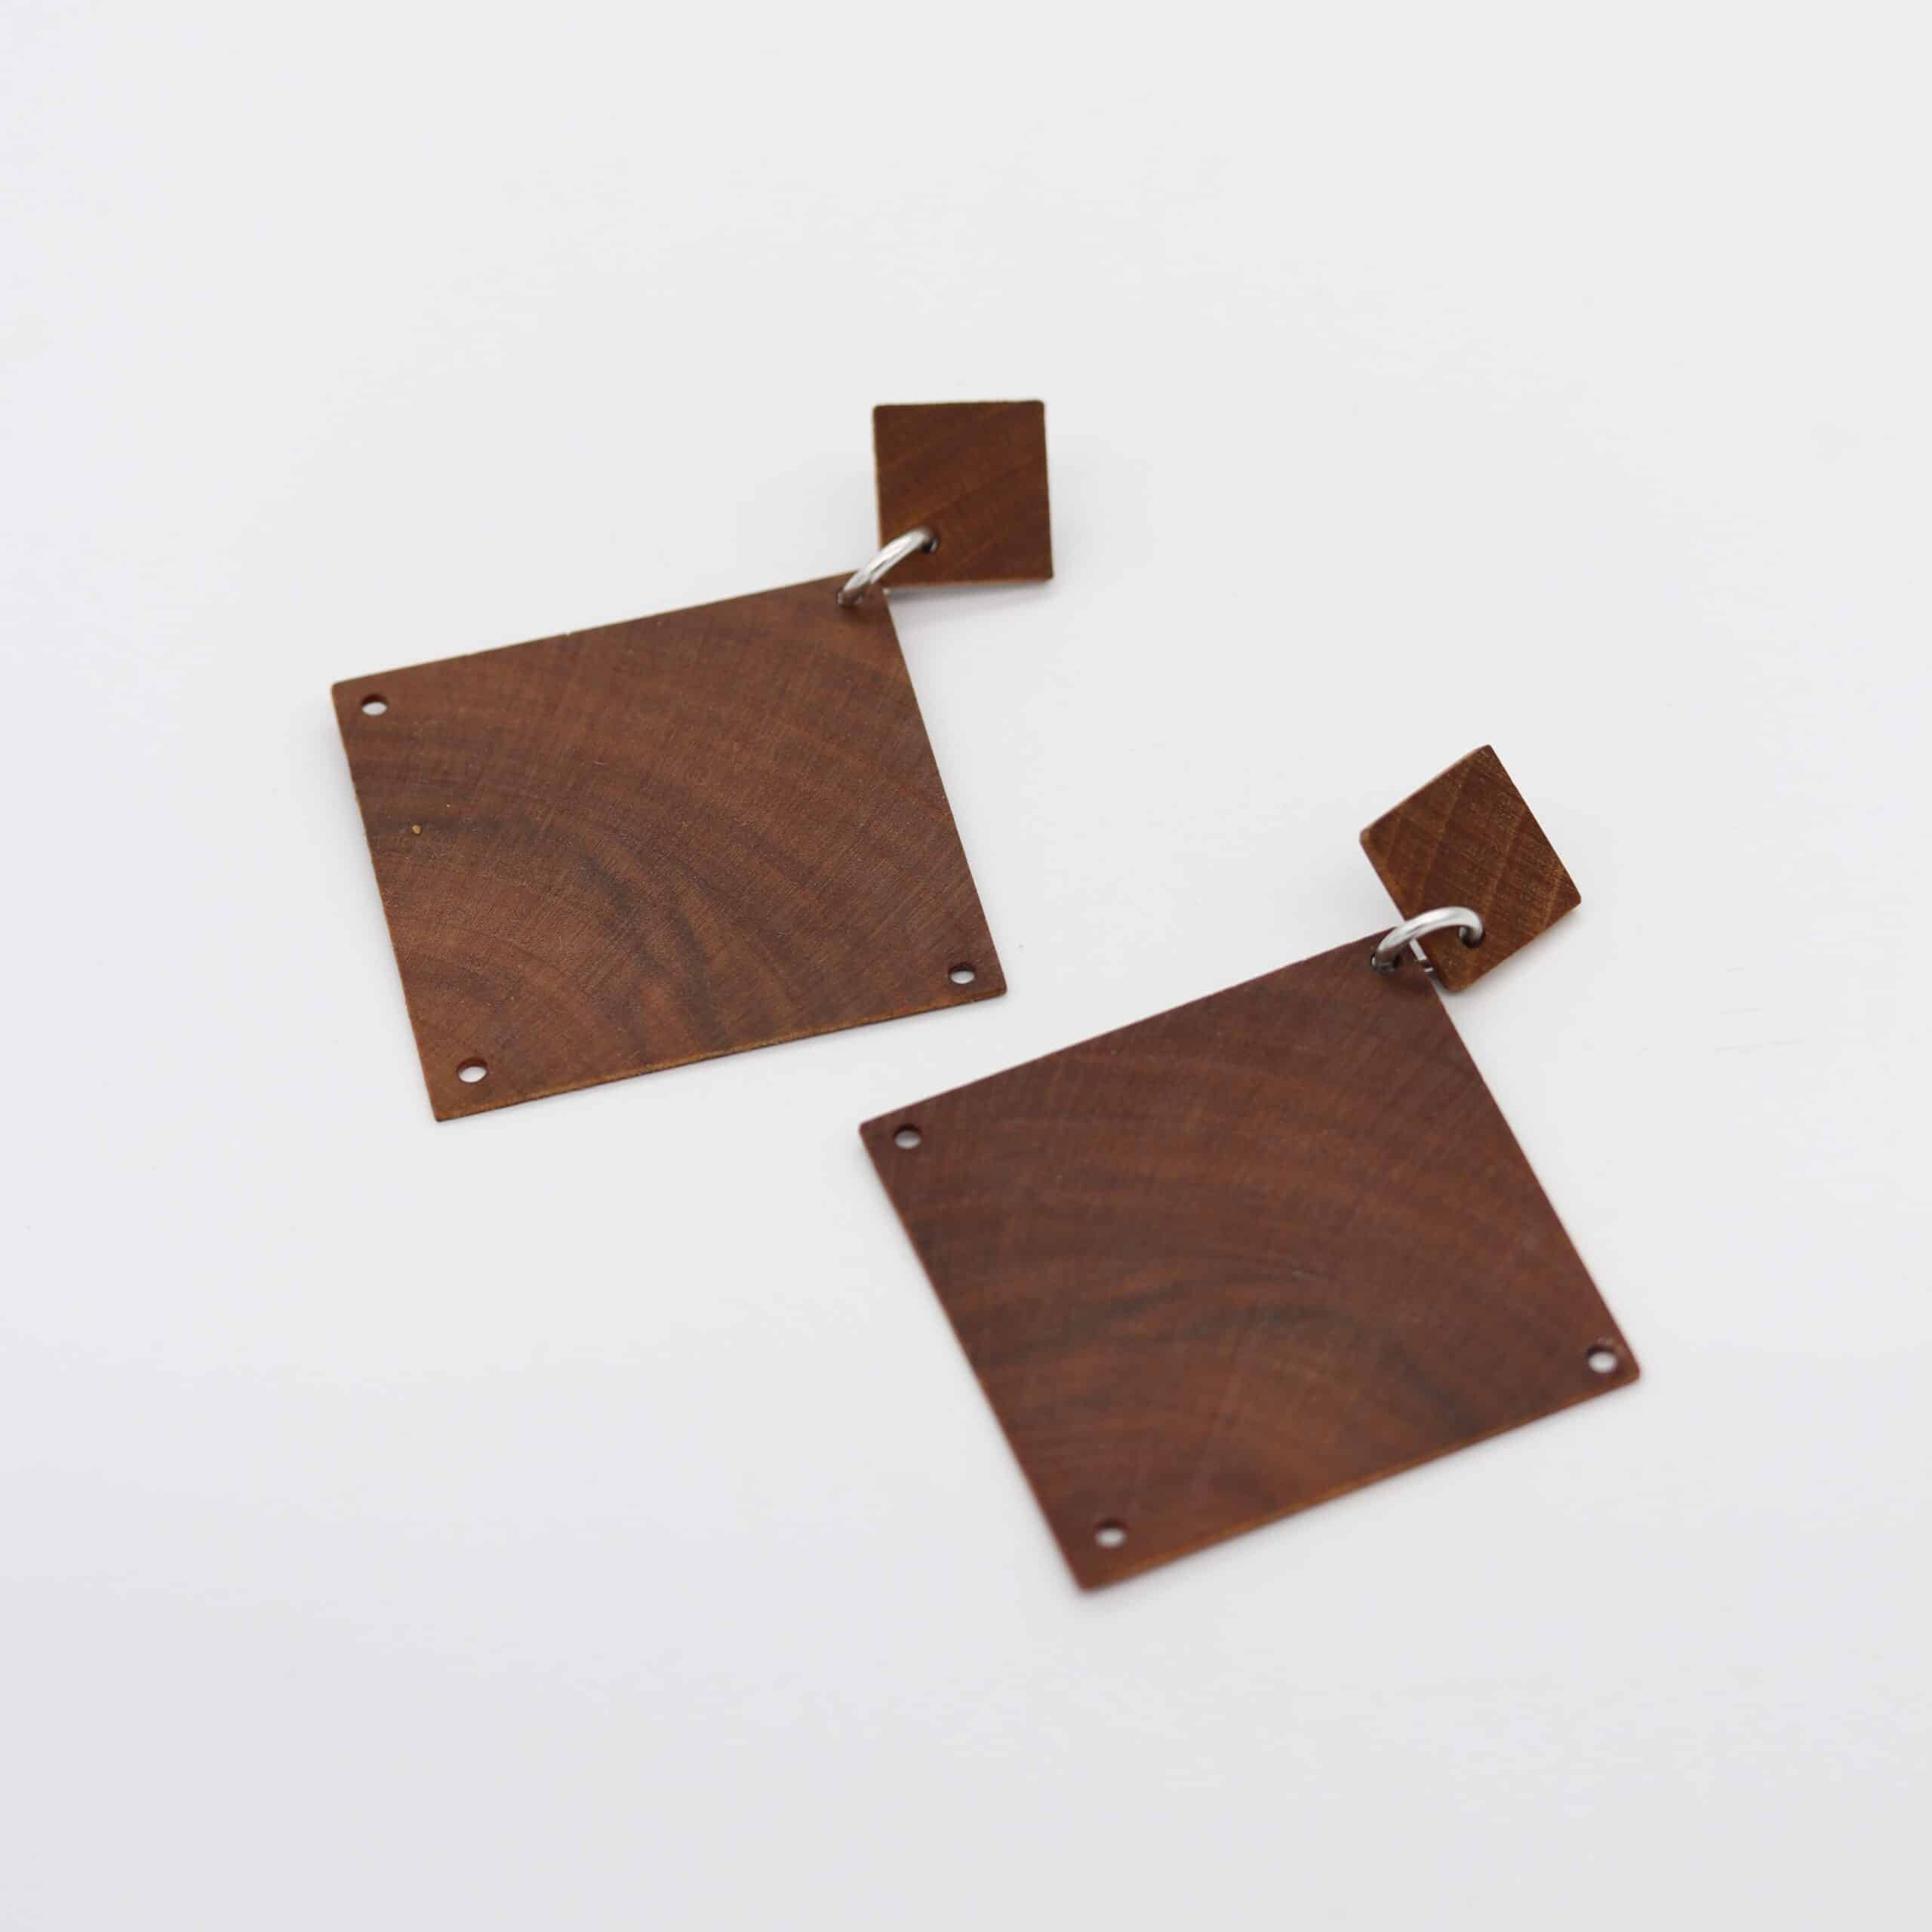 Recycled Timber Earrings – Large Squares By CO'B By Design